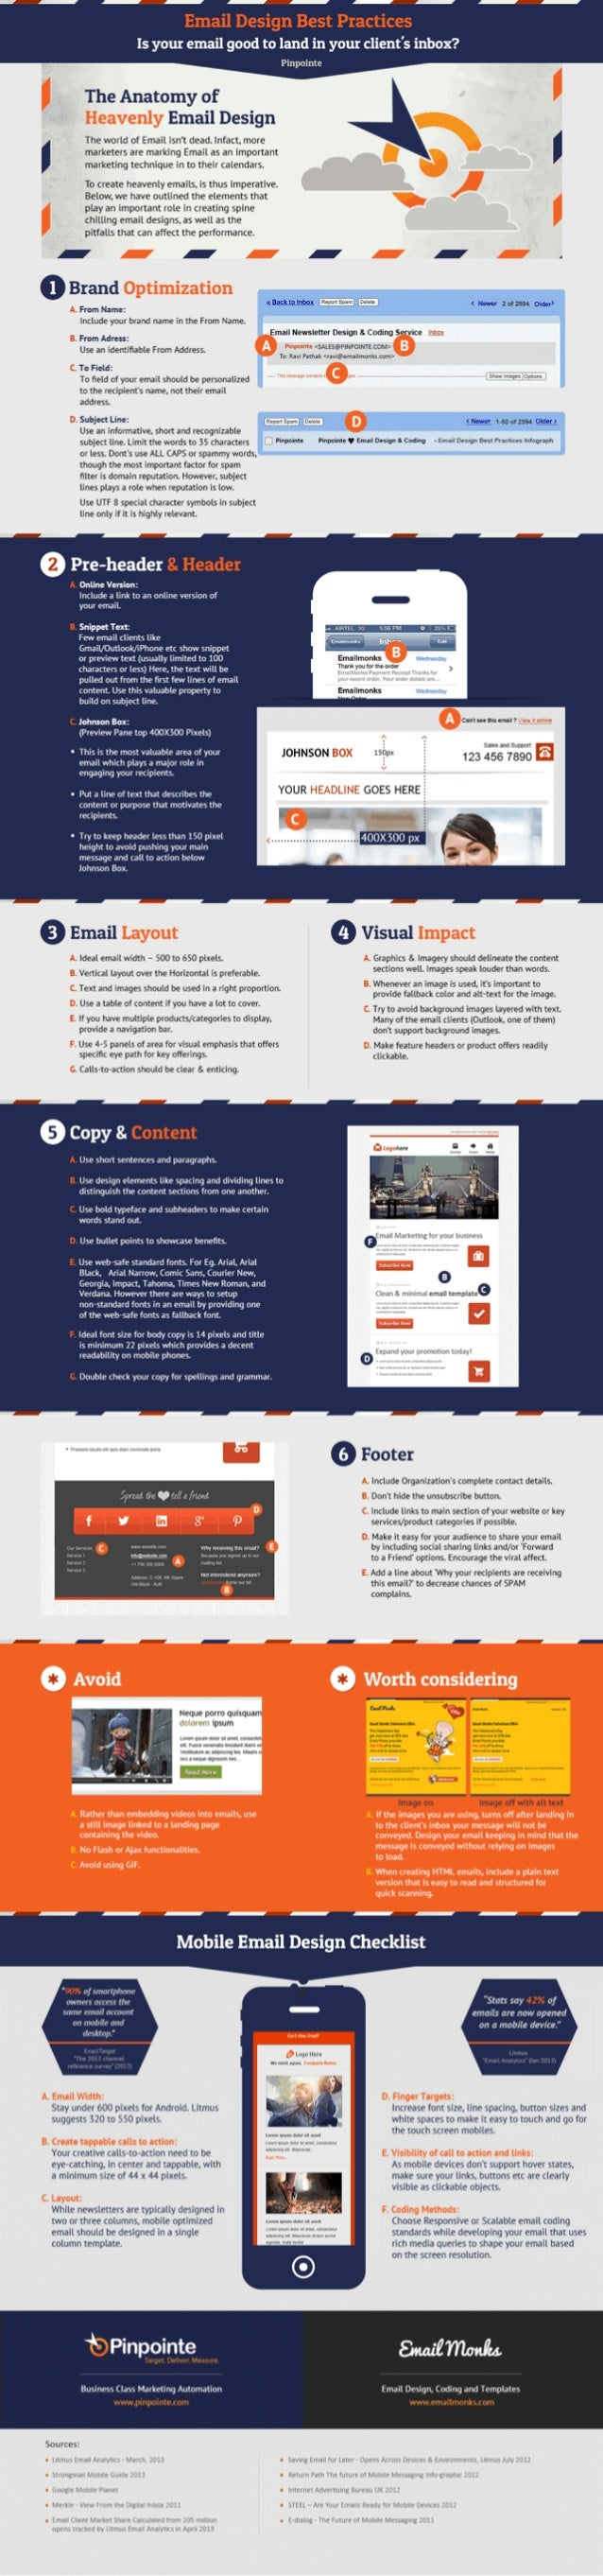 Infographic: Email Design Best Practices